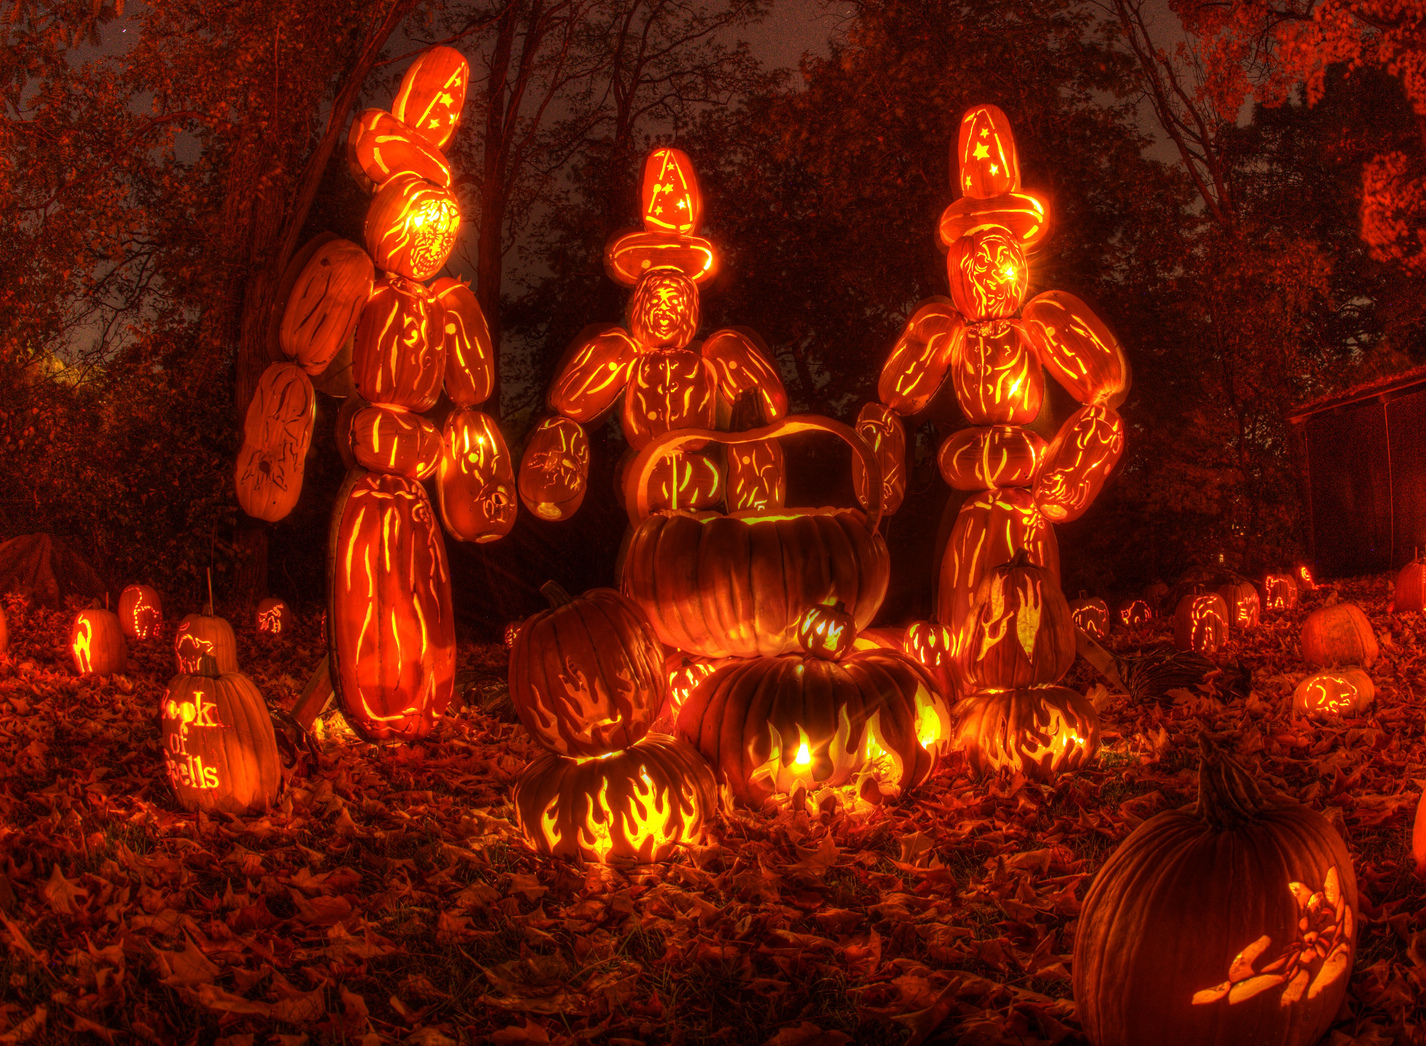 Check out this insane jack o' lantern display in Croton-on-Hudson